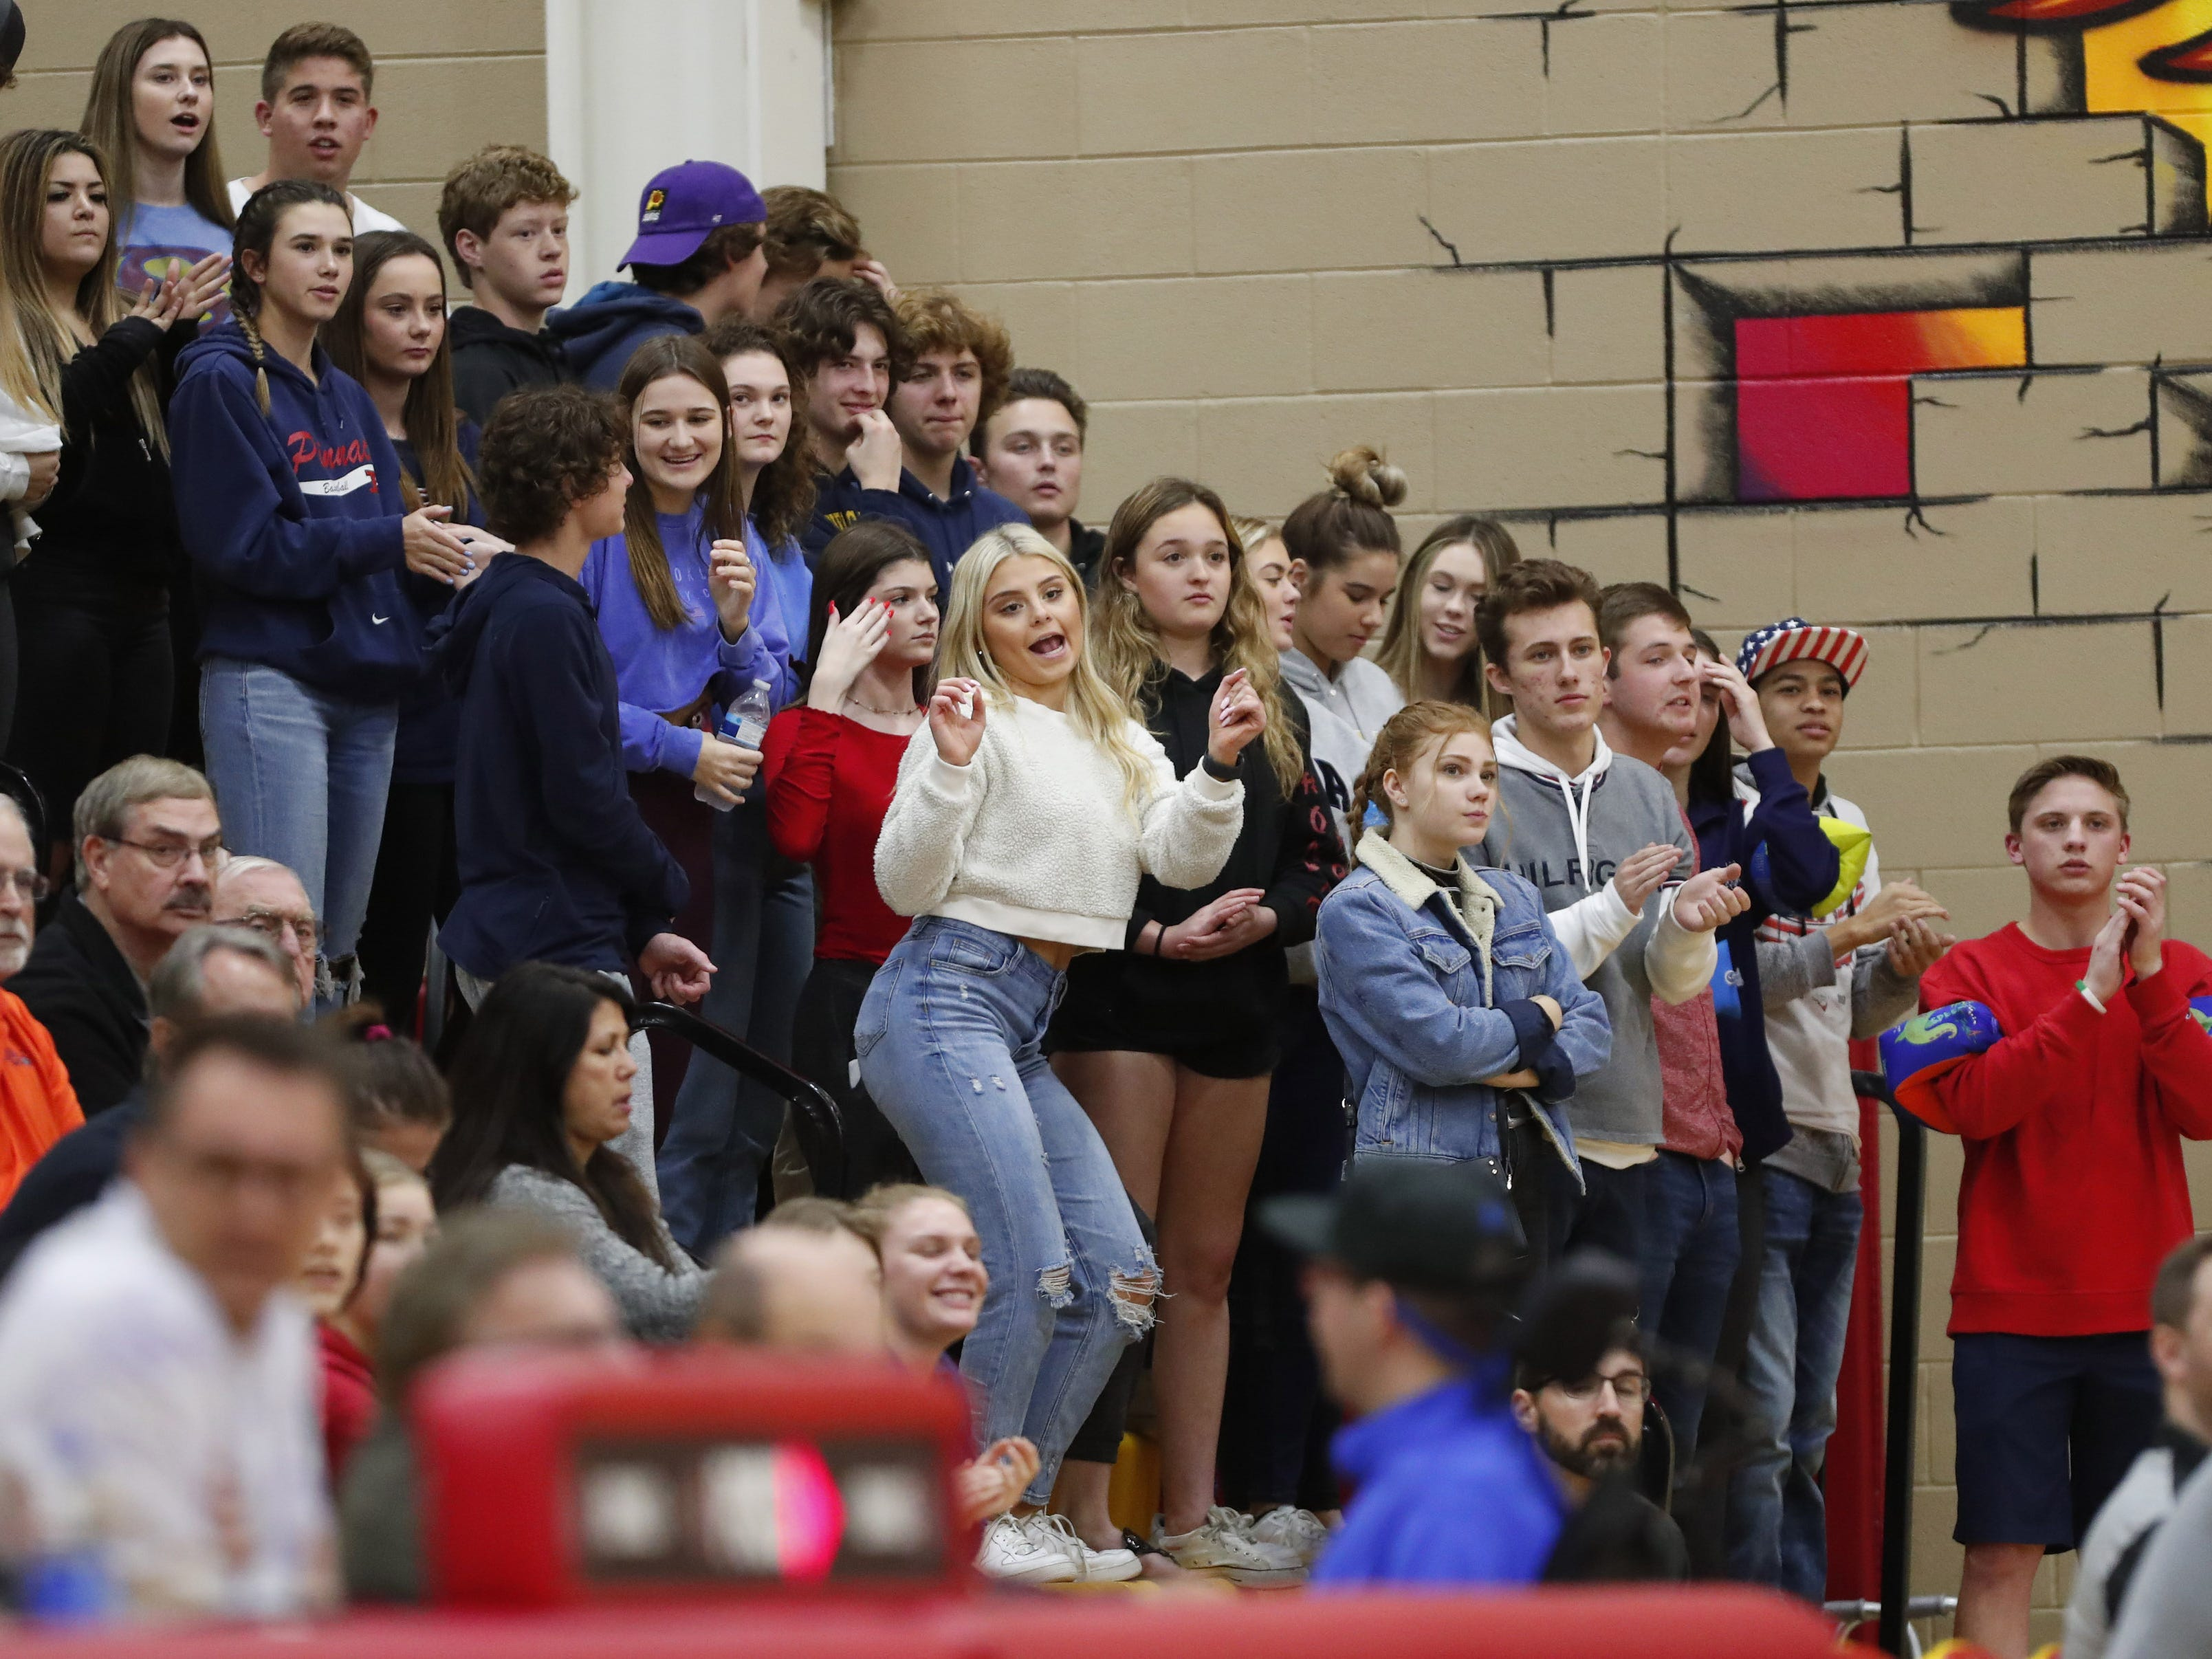 Pinnacle students cheer for their team against Chaparral in Scottsdale January 15, 2019.